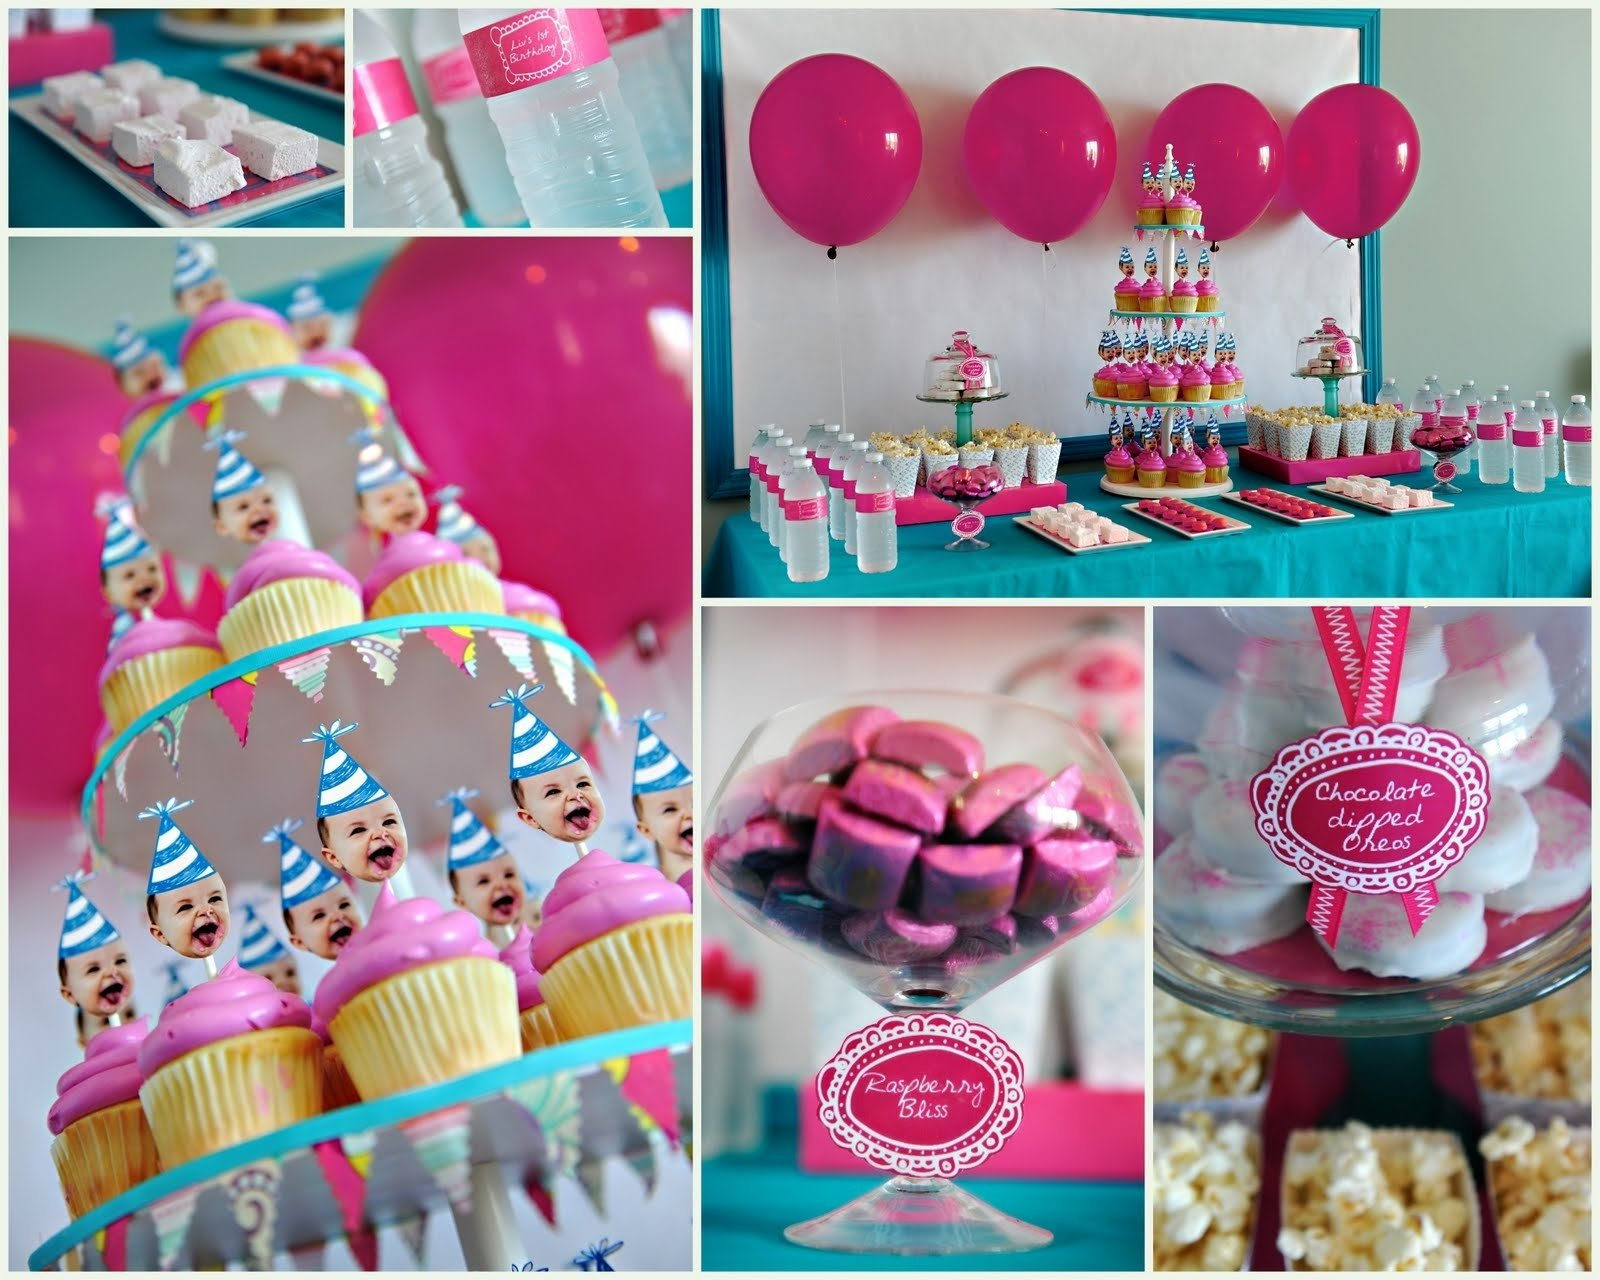 10 Lovable Birthday Ideas For A 1 Year Old themes birthday 1 year old birthday party activity ideas with 1 2020